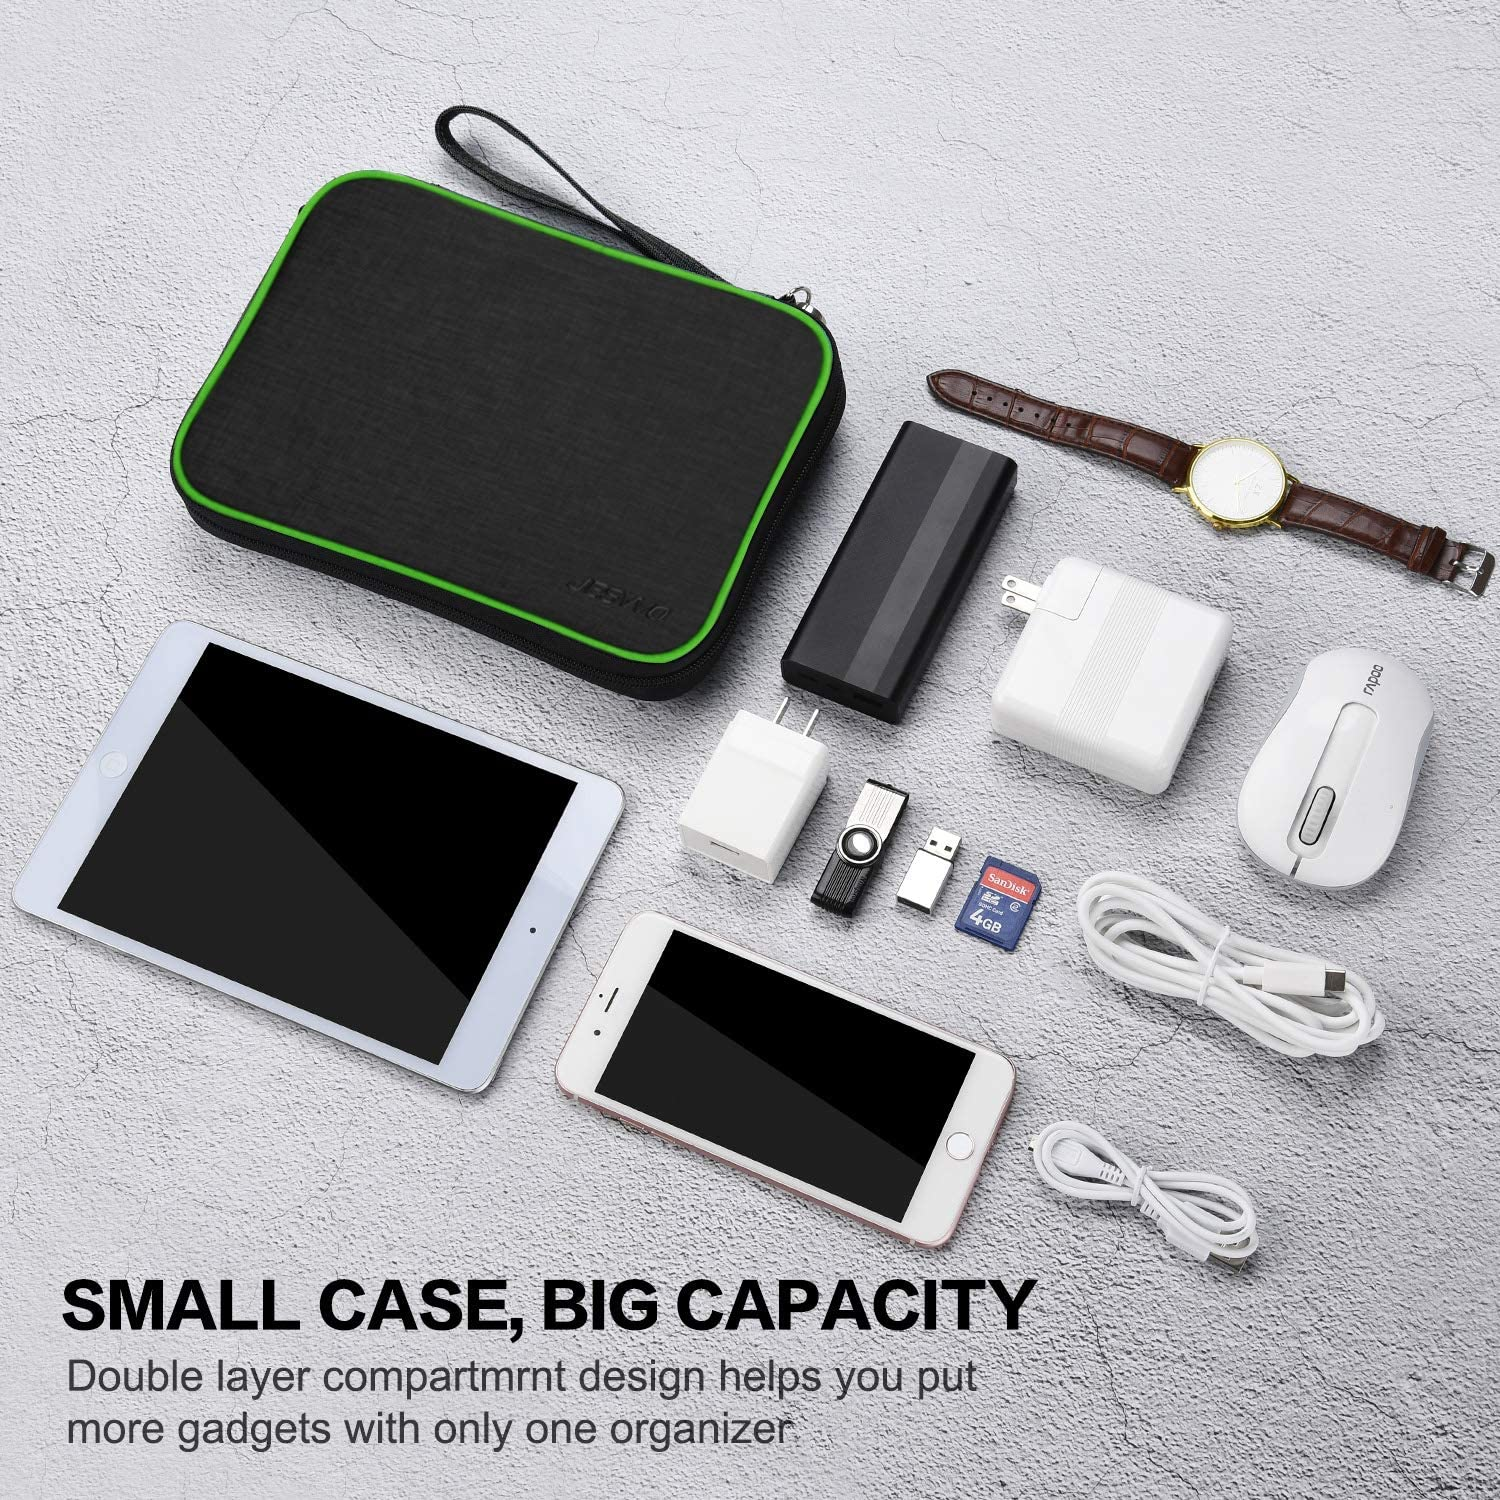 Up to 7.9 Black Charger /& Power Bank Portable Travel Gadget Bag for Cable Electronics Accessories Organizer Bag with Double Zipper SD Card JESWO Travel Cable Organiser Bag iPad